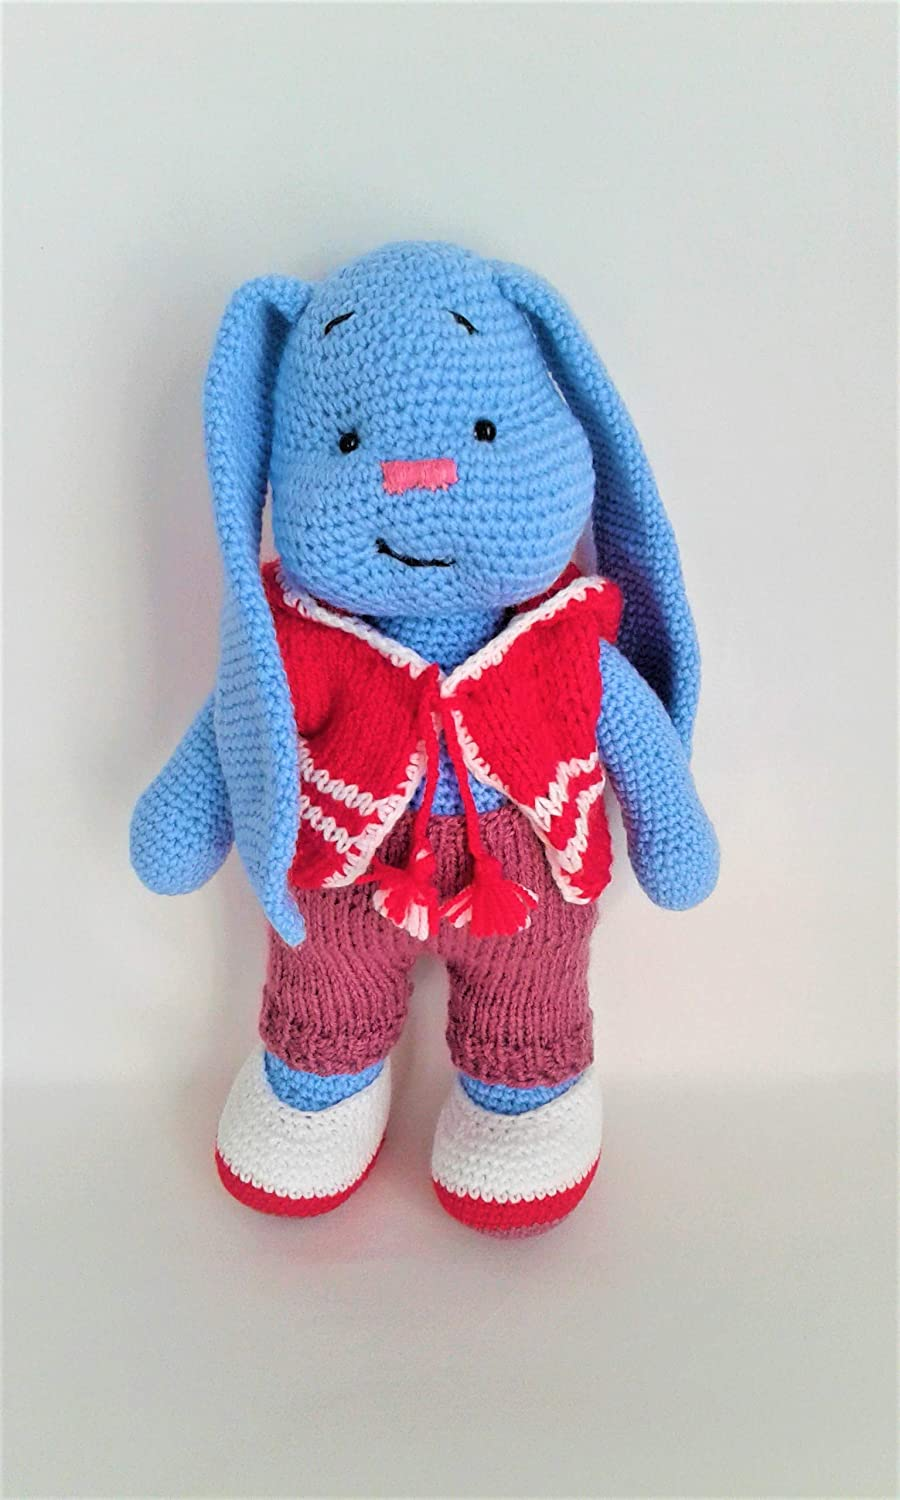 Rabbit Soft Knitted Doll Dolls for Sale Handmade Stuffed Rabbit Interior Doll Decorate the Childrens Room Gift for Children